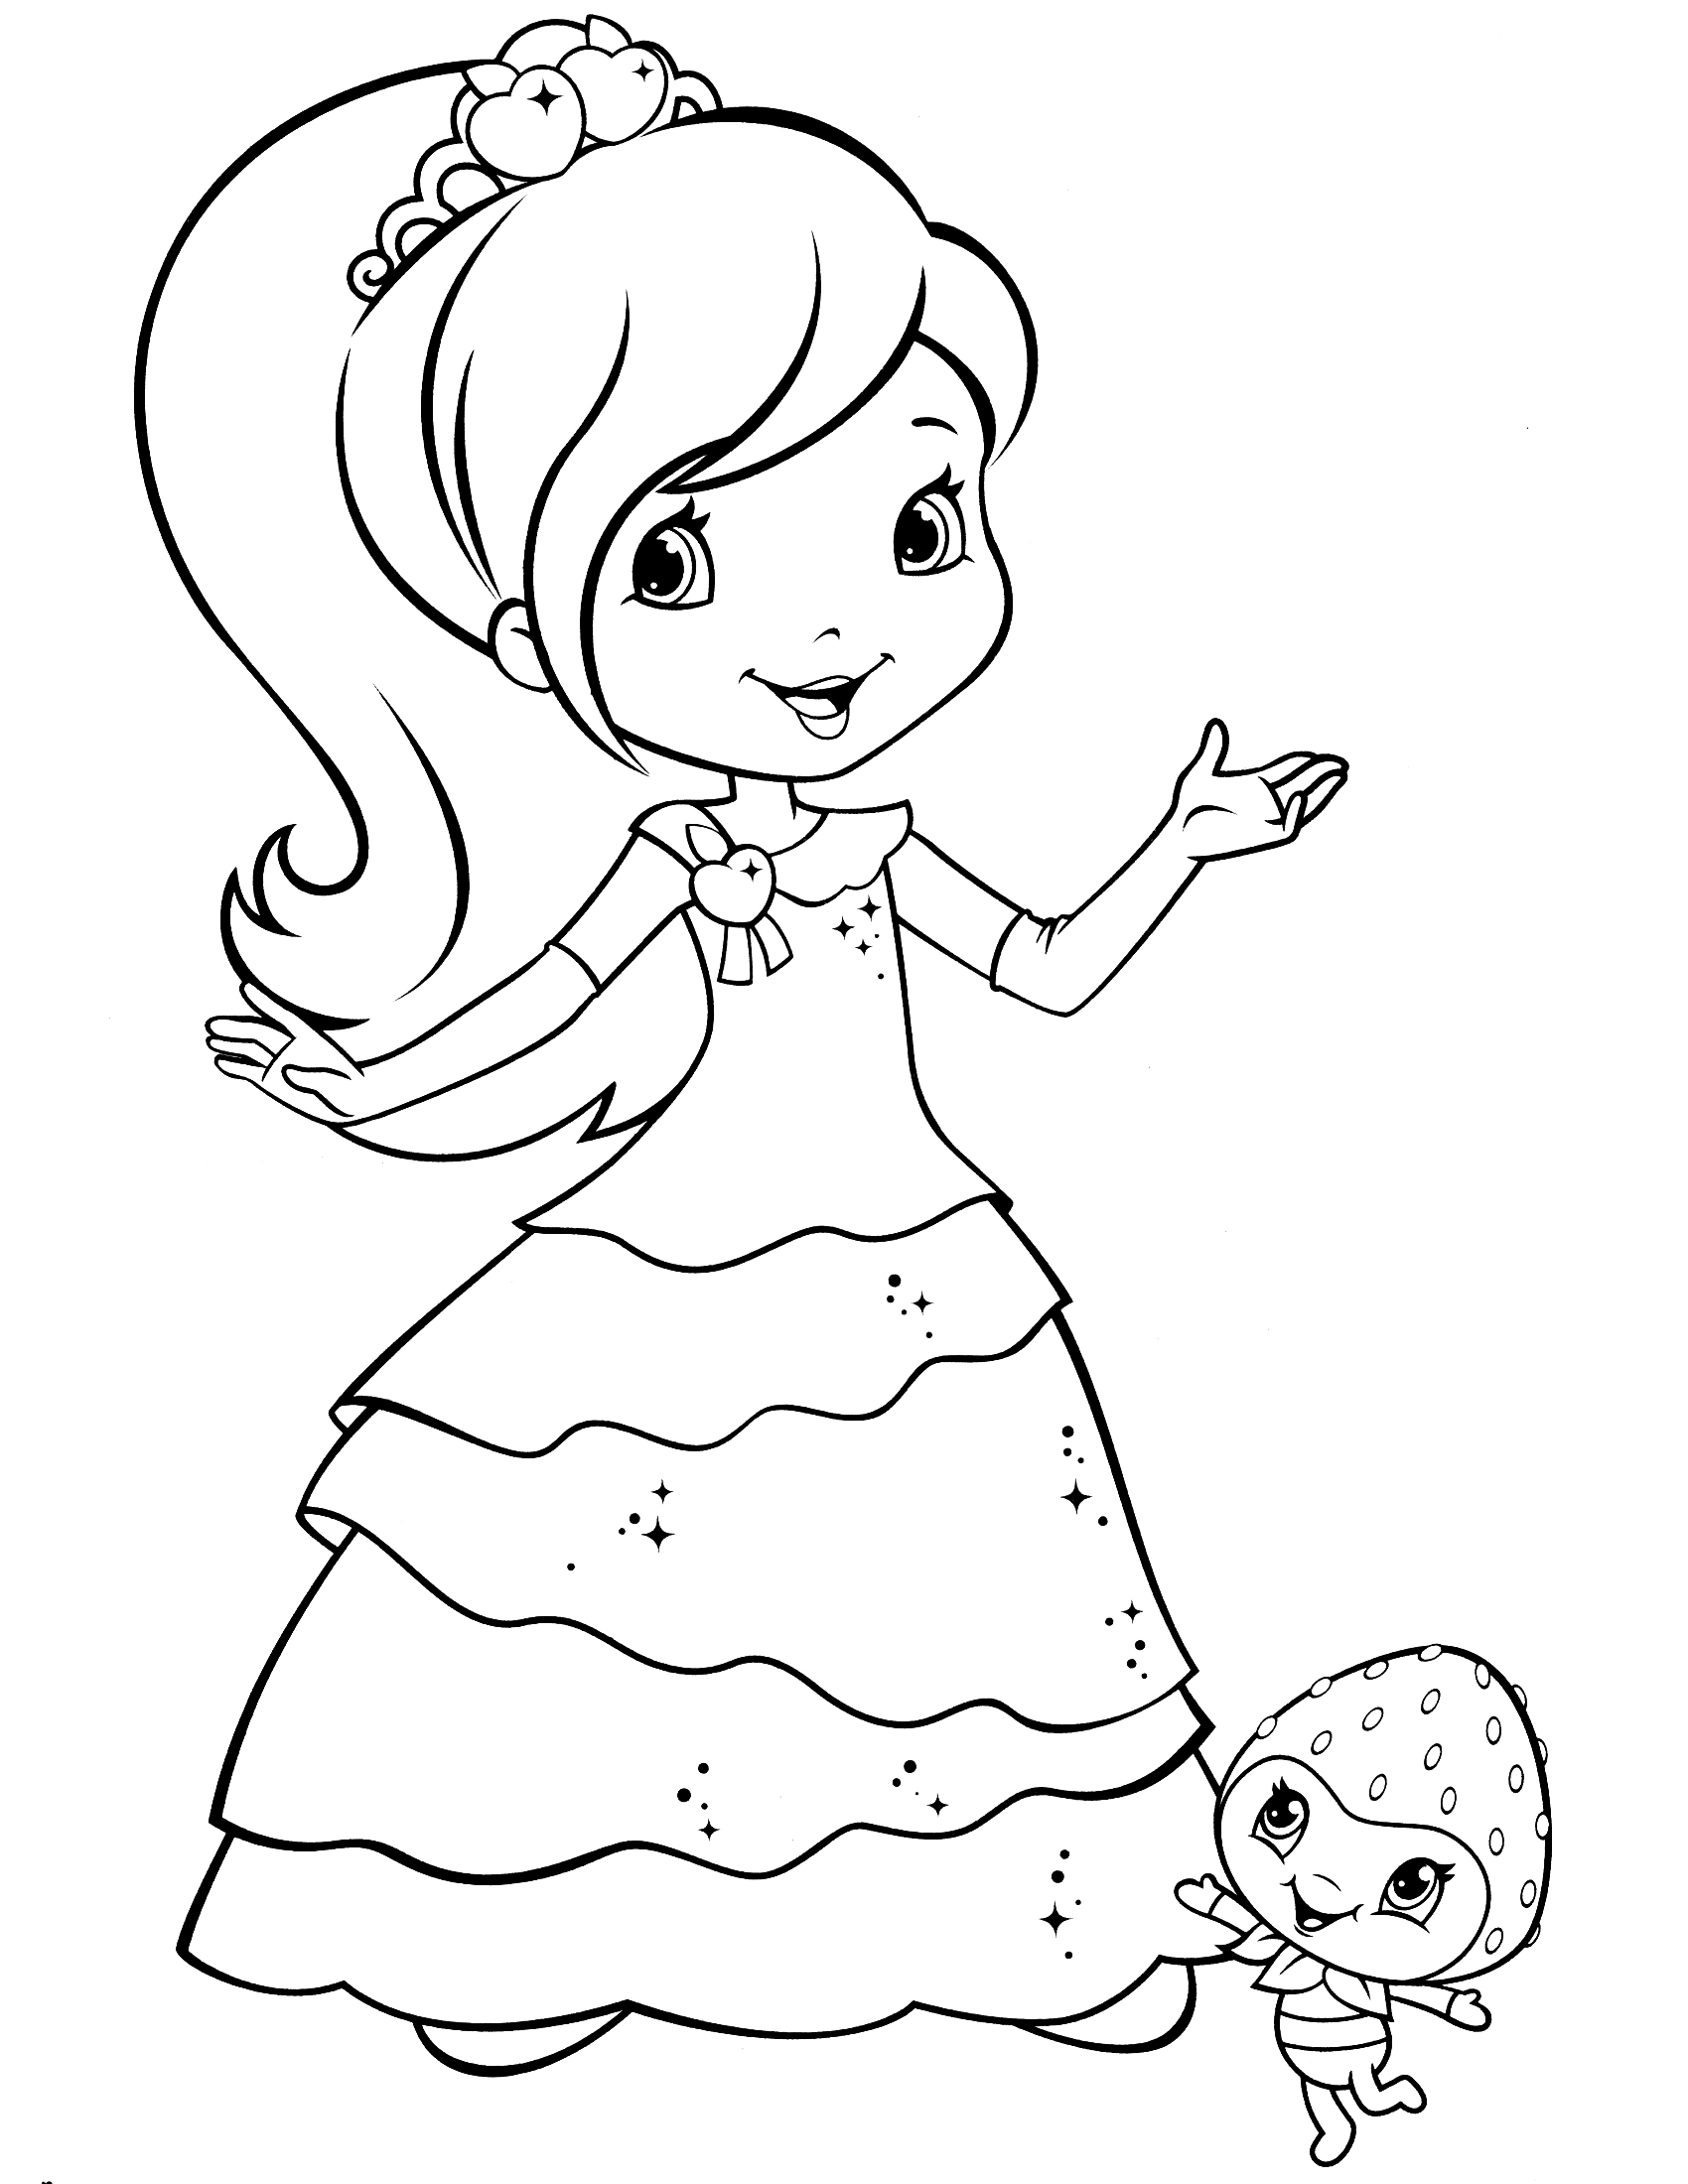 strawberry shortcake drawing at getdrawings com free for personal